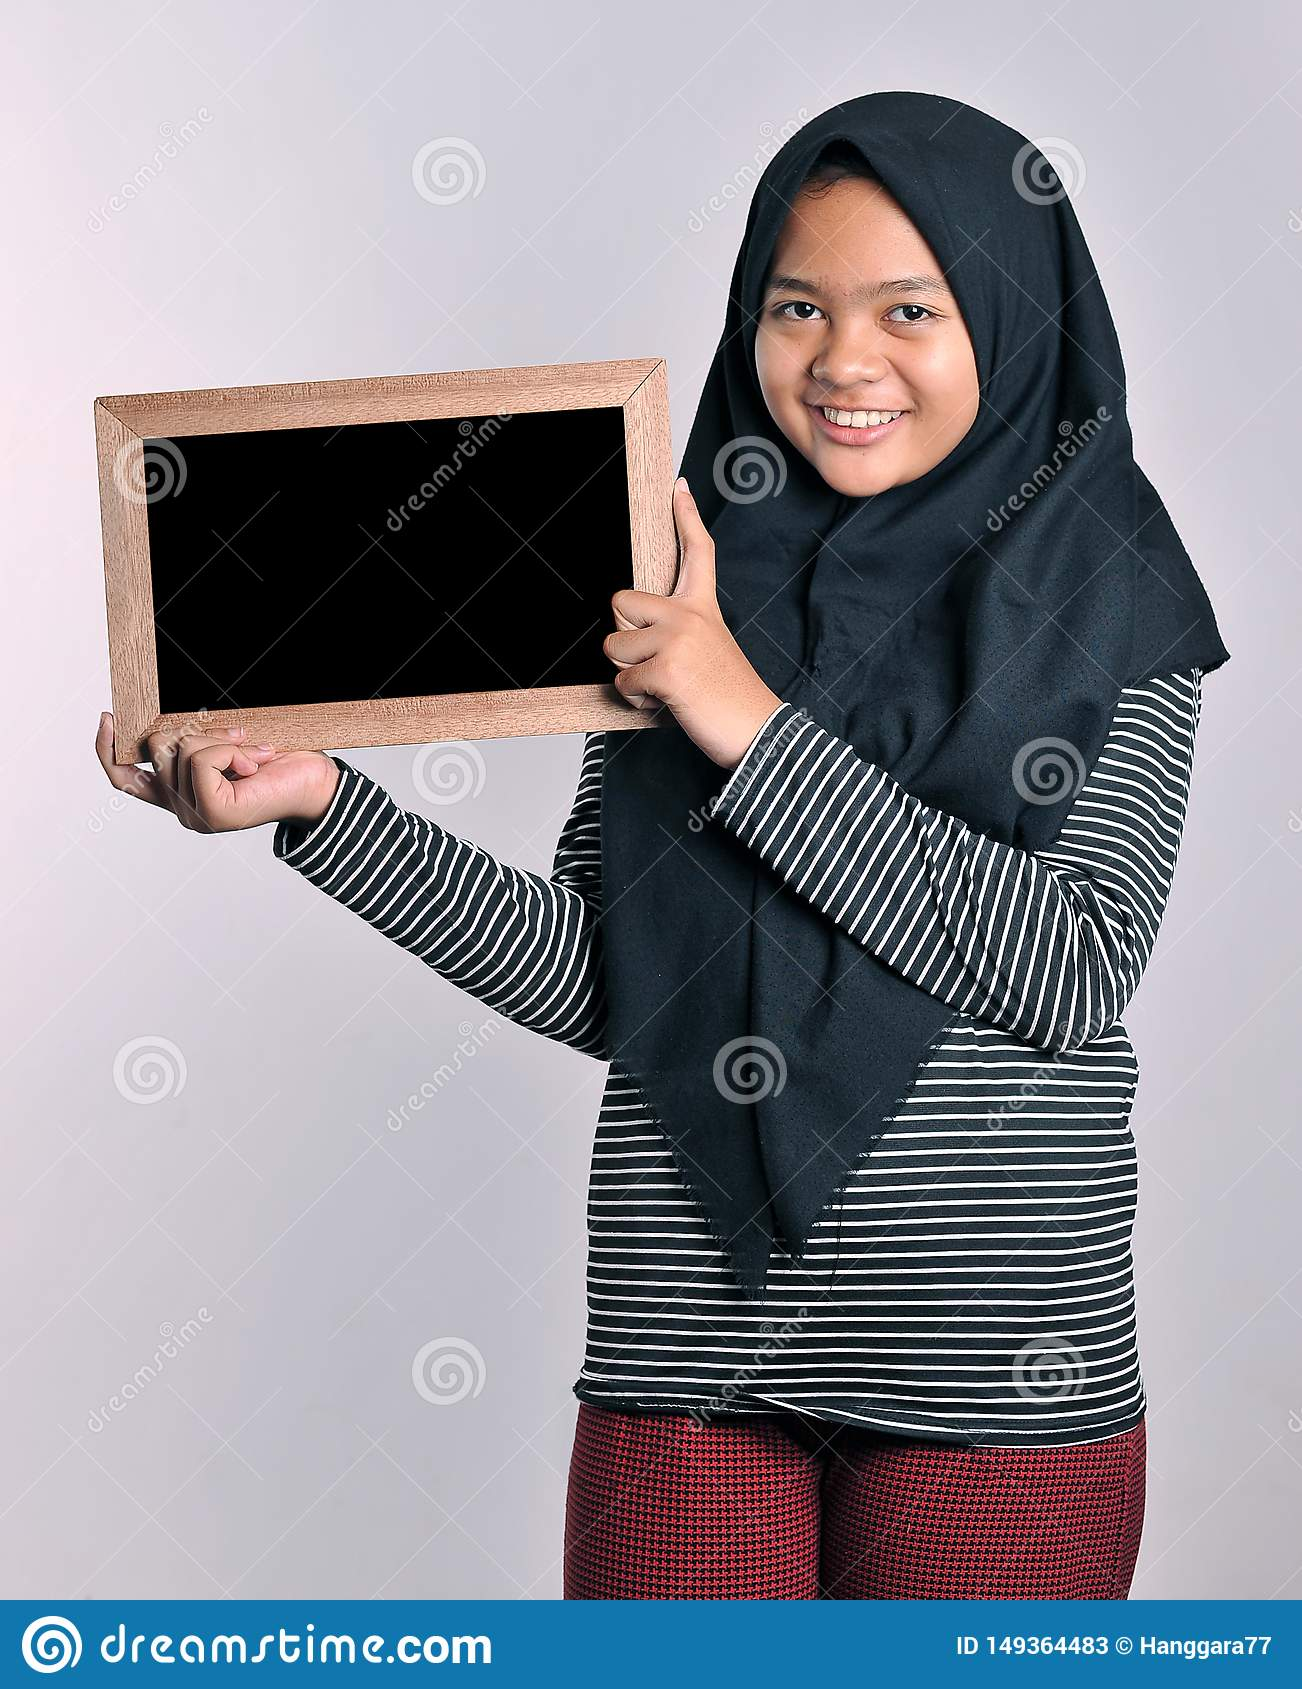 Portrait of young asian woman in islamic headscarf holding chalkboard. Smiling asian woman wearing islamic headscarf holding